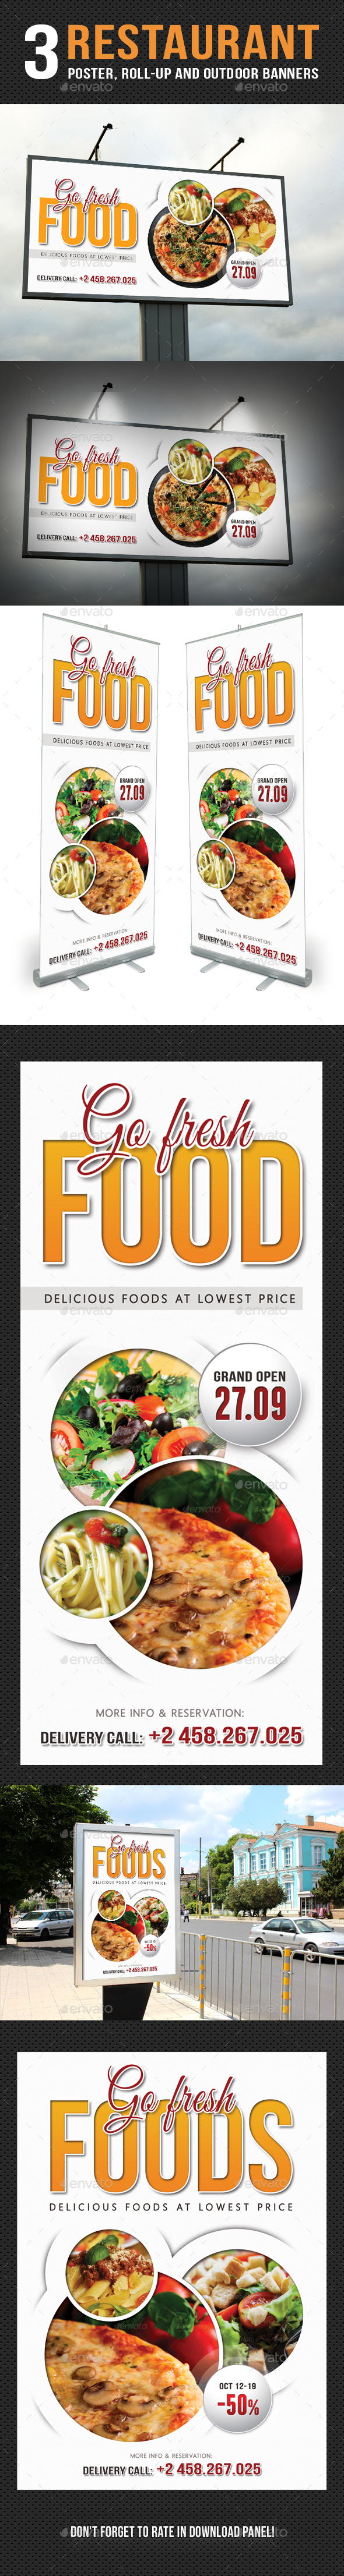 3 in 1 Restaurant Food Poster and Banners Bundle